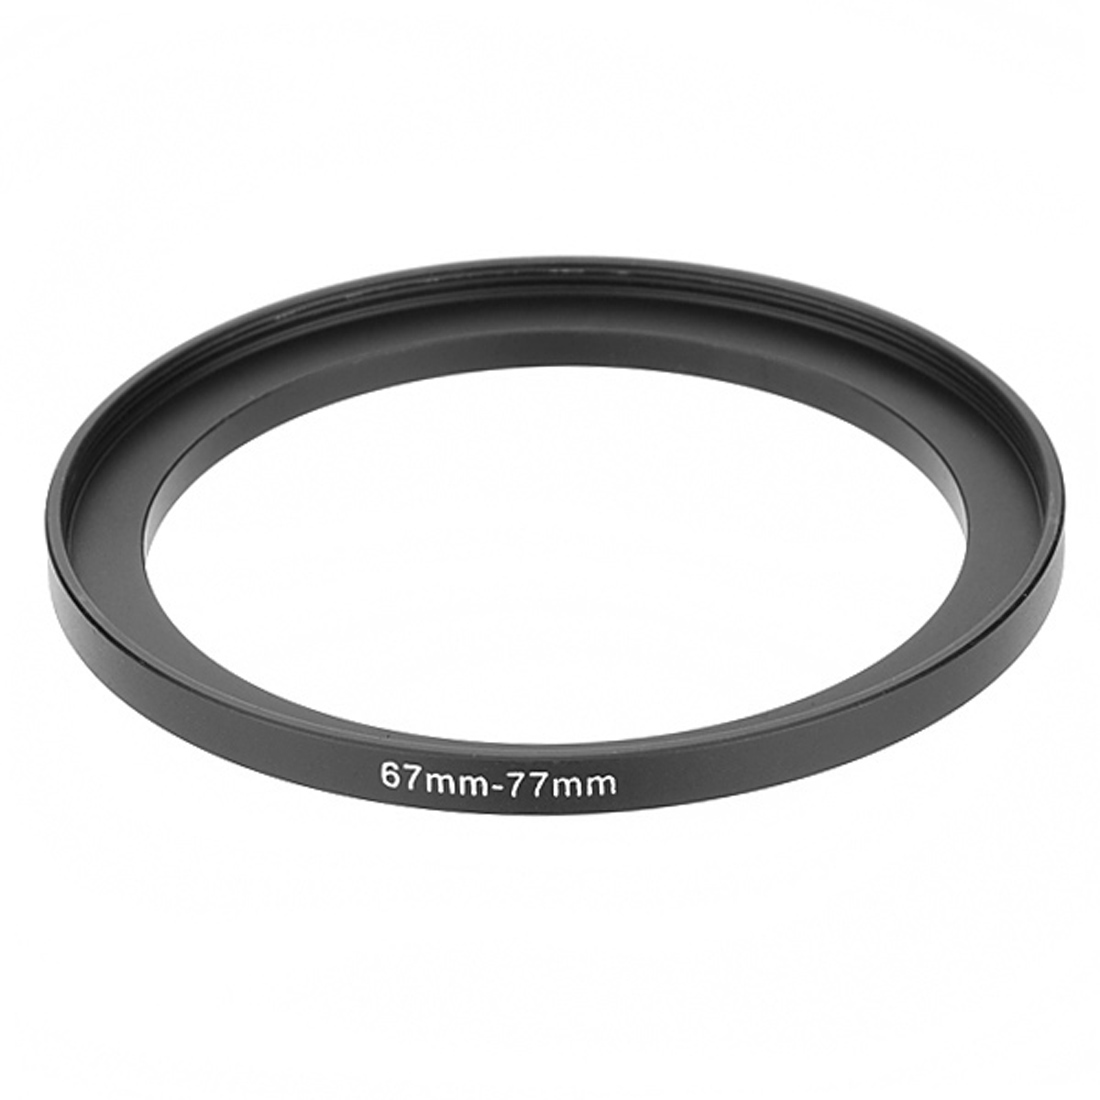 Step-up ring Marumi 67-77 mm